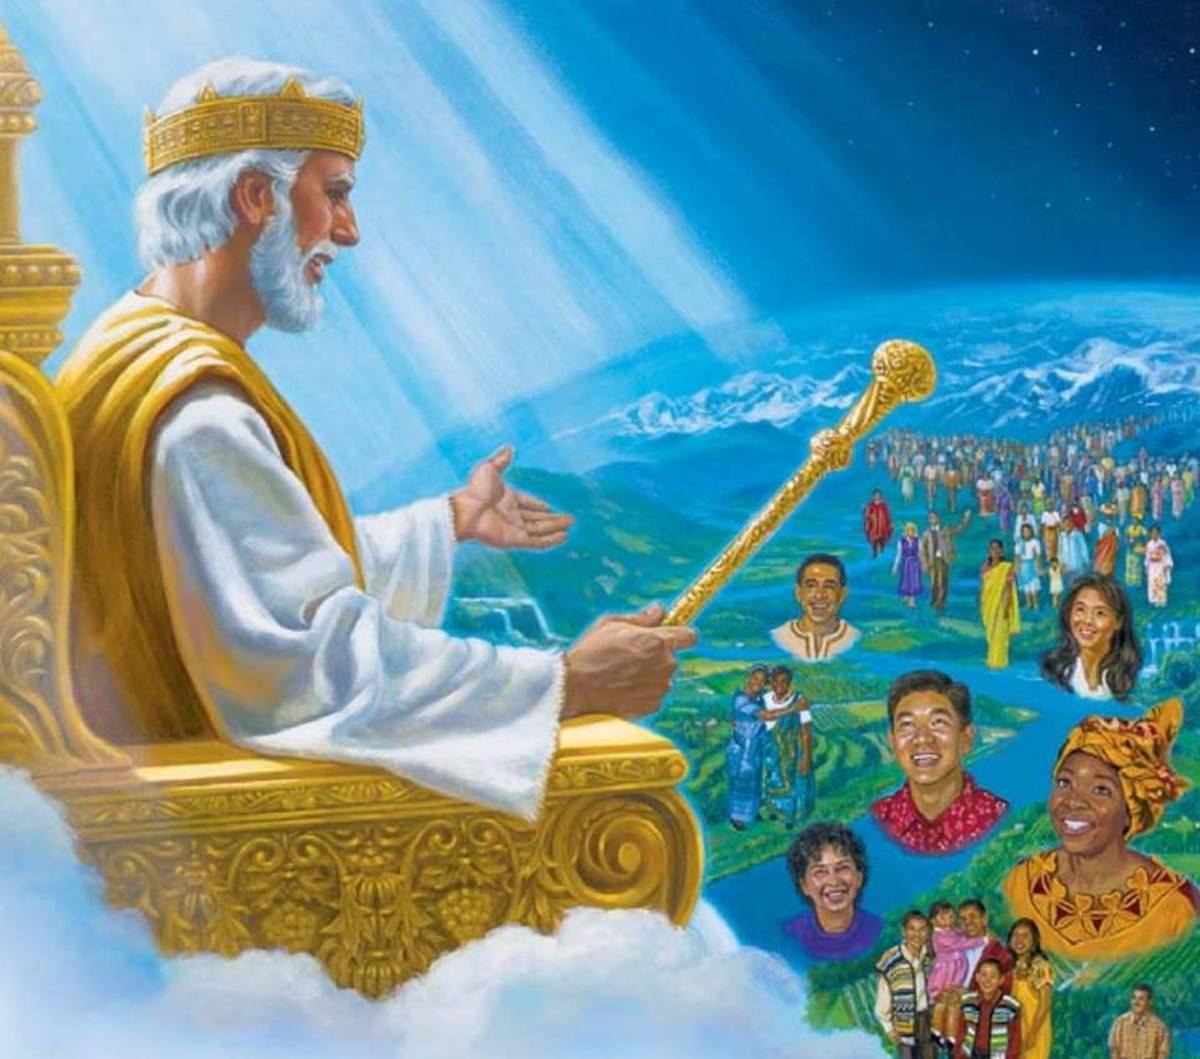 Was Jesus Enthroned King In 1914 As Jehovah's Witnesses Teach?